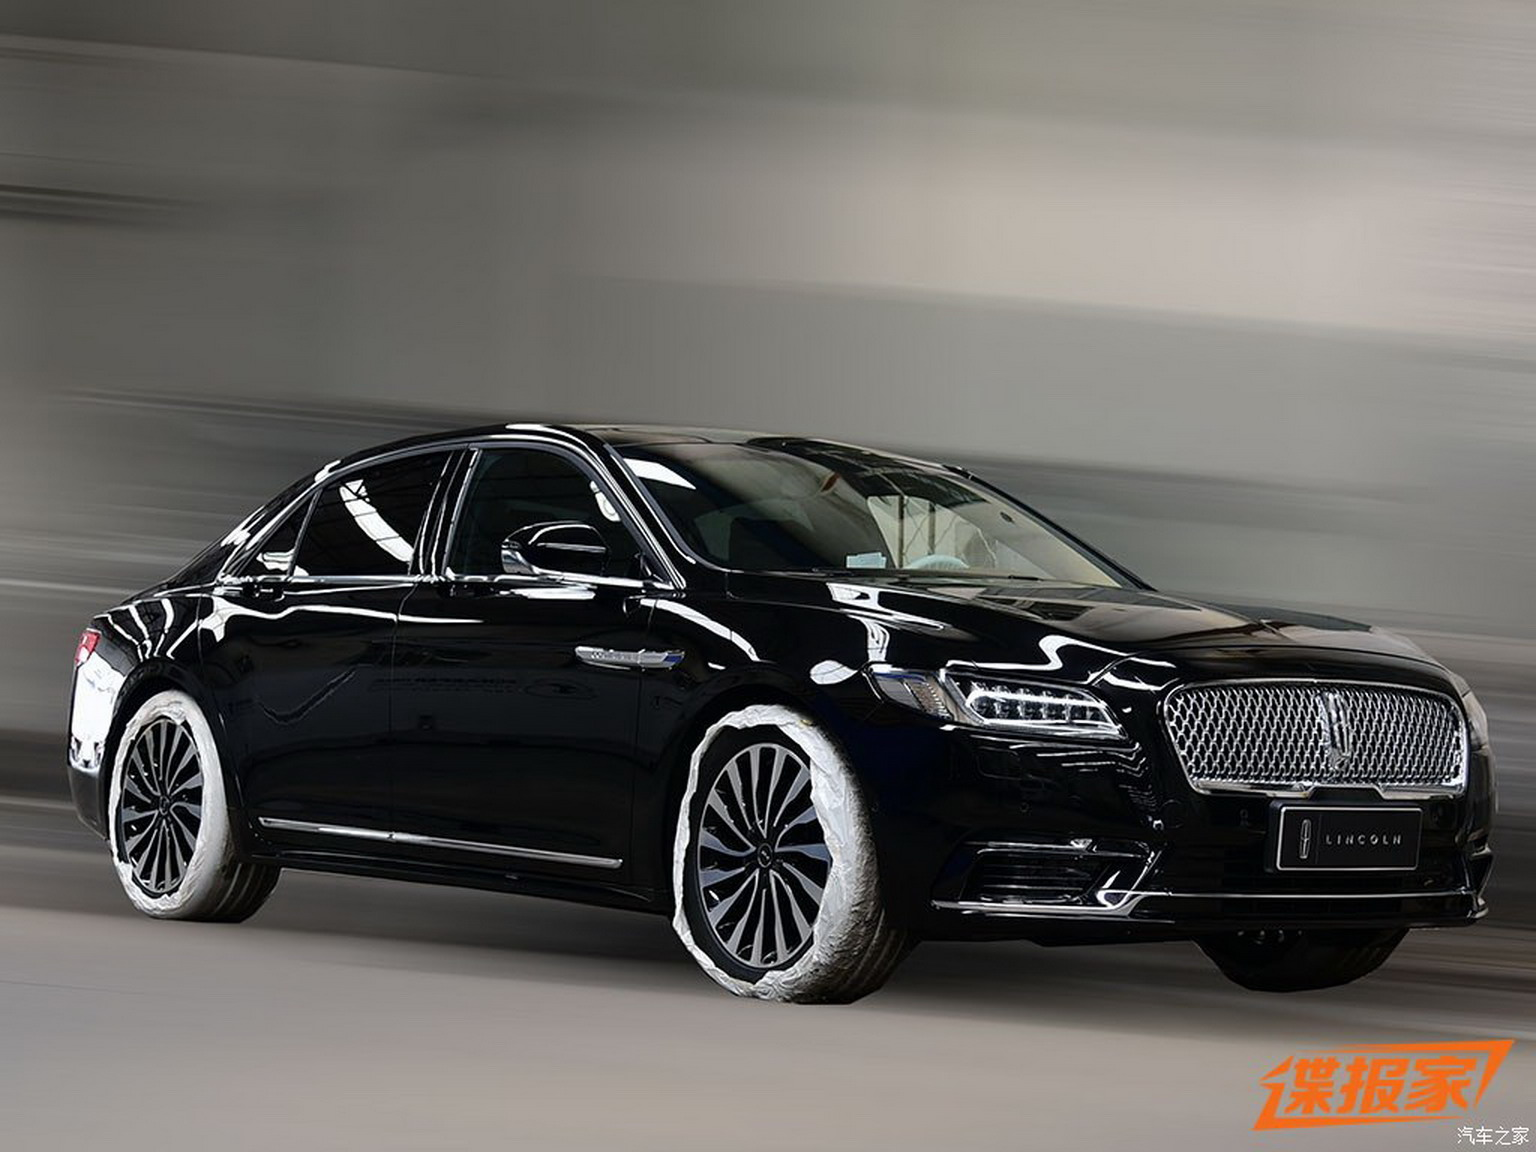 2017 Lincoln Continental Presidential To Debut In China Next Week